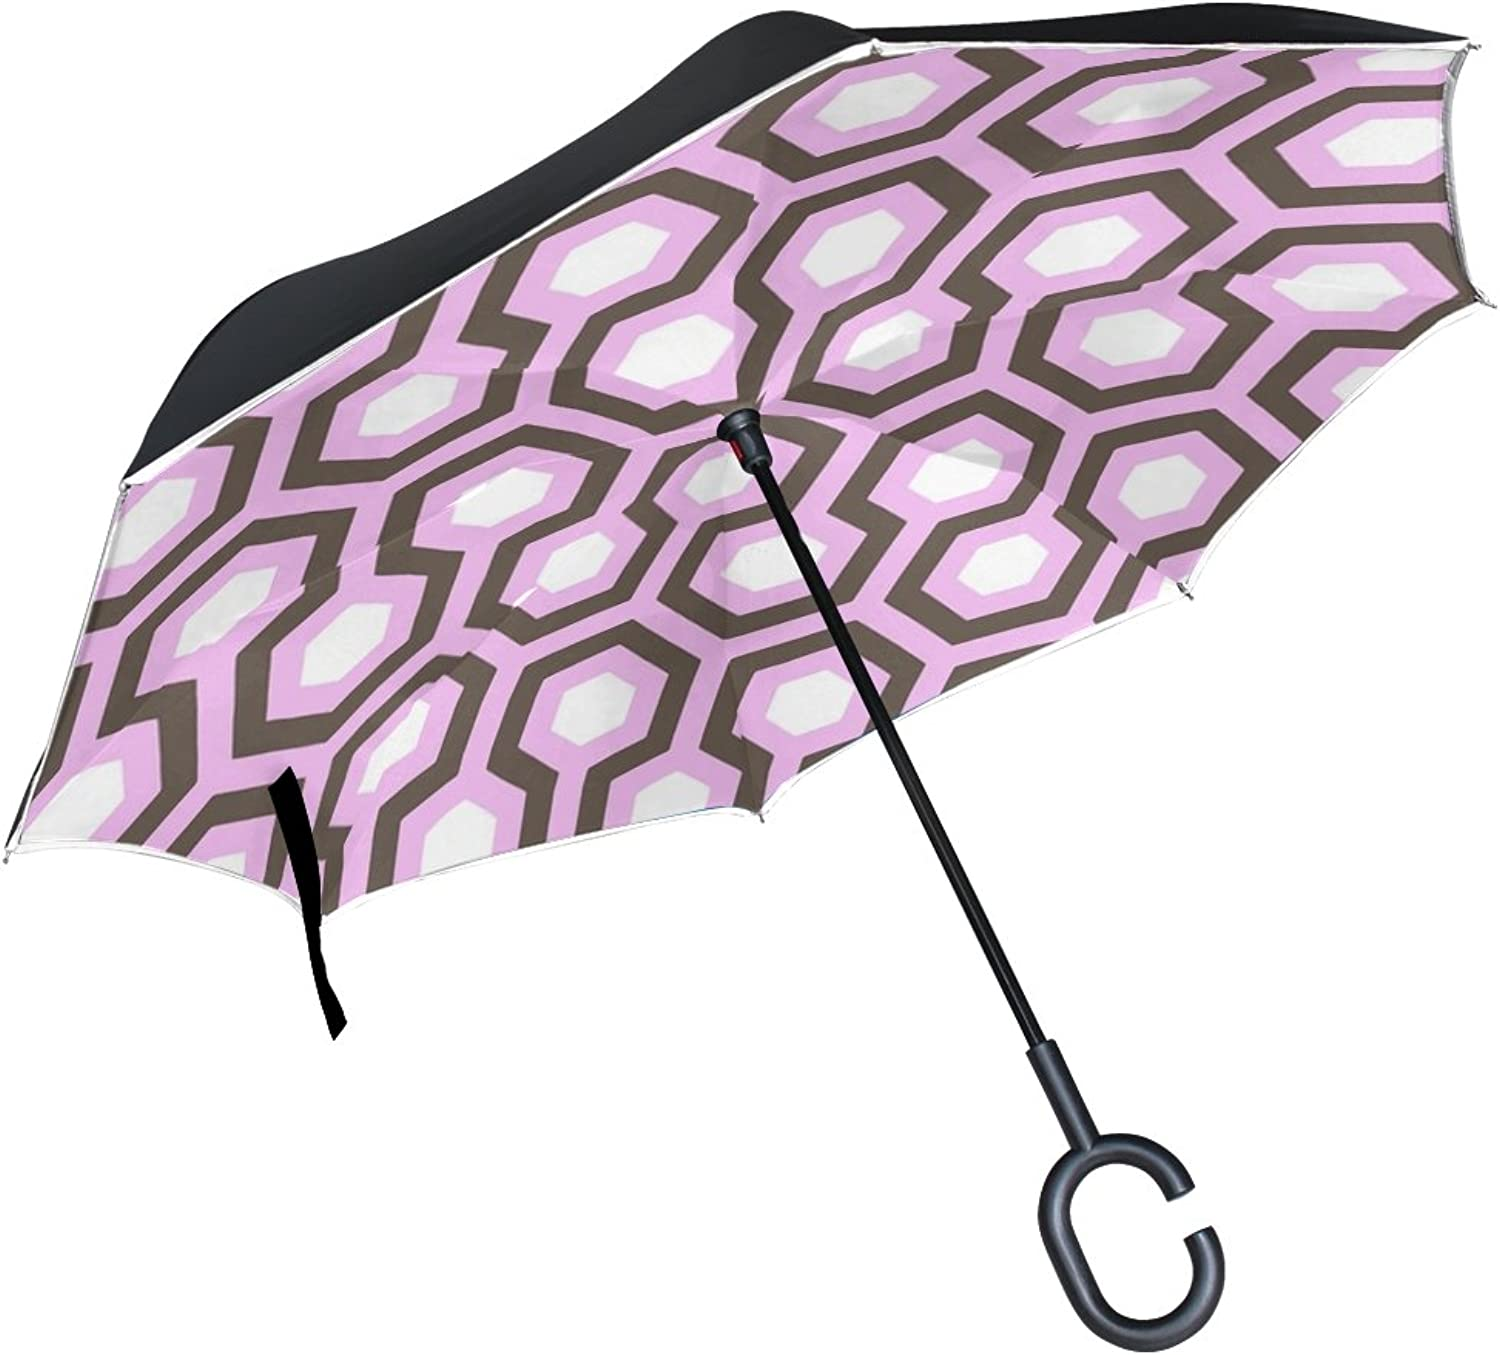 Double Layer Ingreened Funds Texture Pattern Honey Honeycomb Bees Umbrellas Reverse Folding Umbrella Windproof Uv Predection Big Straight Umbrella for Car Rain Outdoor with CShaped Handle